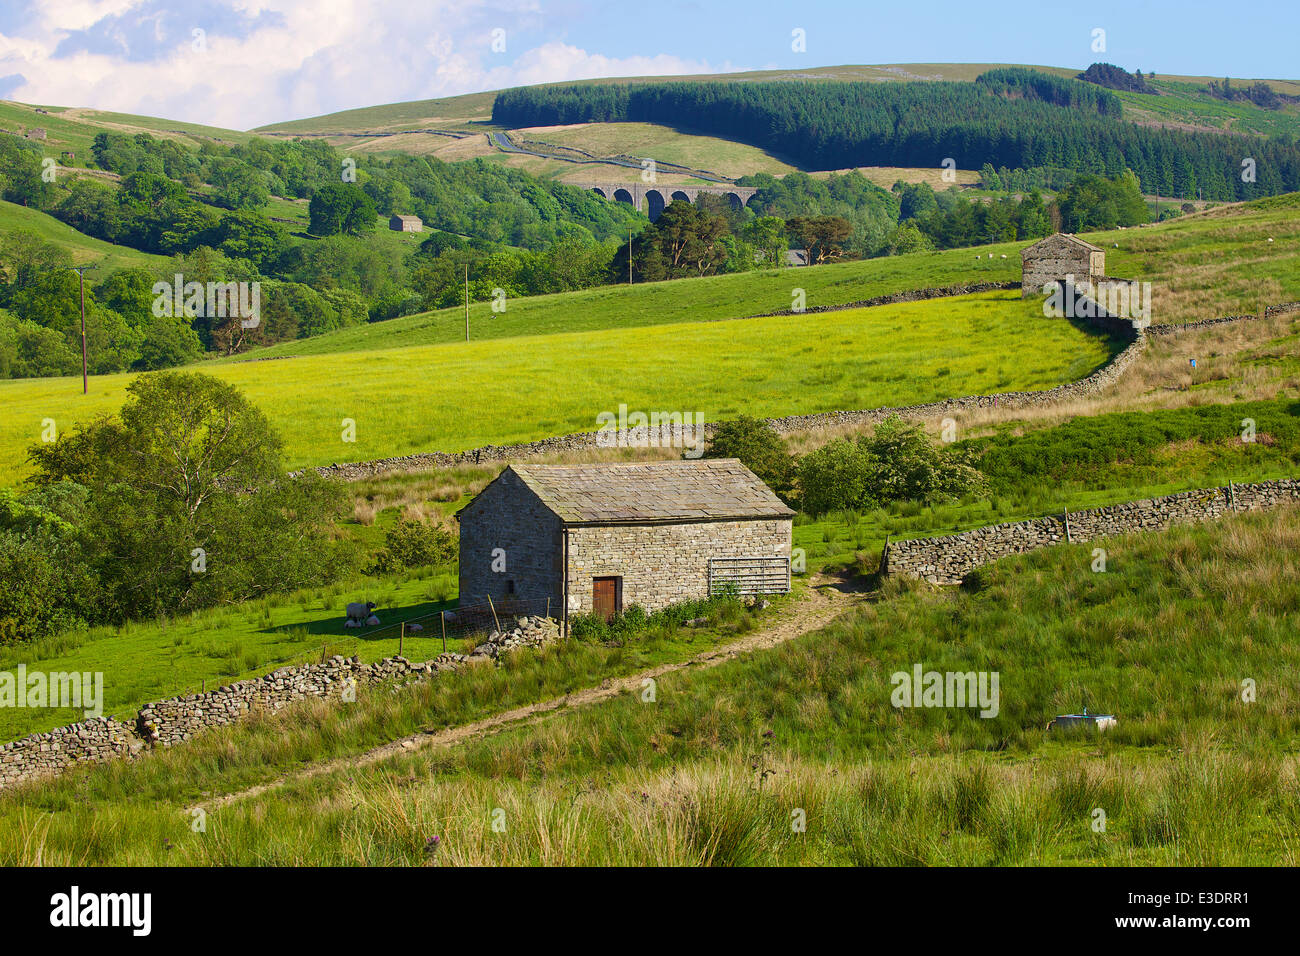 Stone barns near Dent Head Viaduct, Dent, Cumbria, Yorkshire Dales National Park, North Yorkshire, England, United - Stock Image